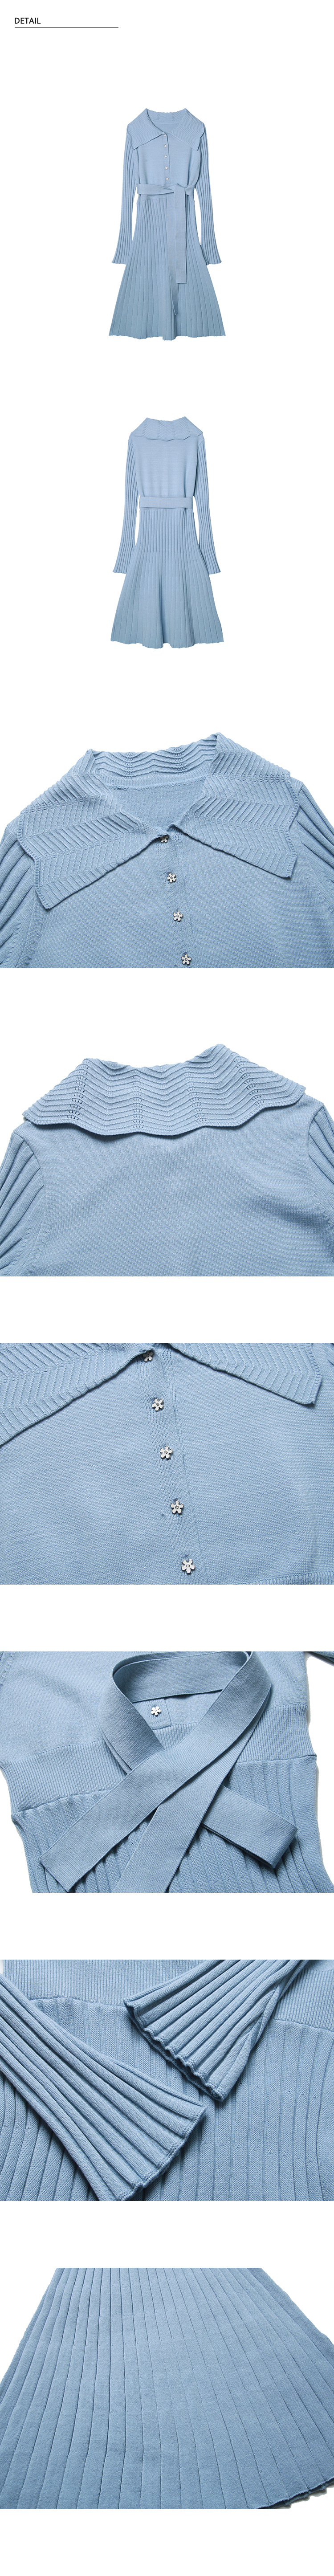 몬츠(MONTS) 856 sailor collar knit ops (light blue)